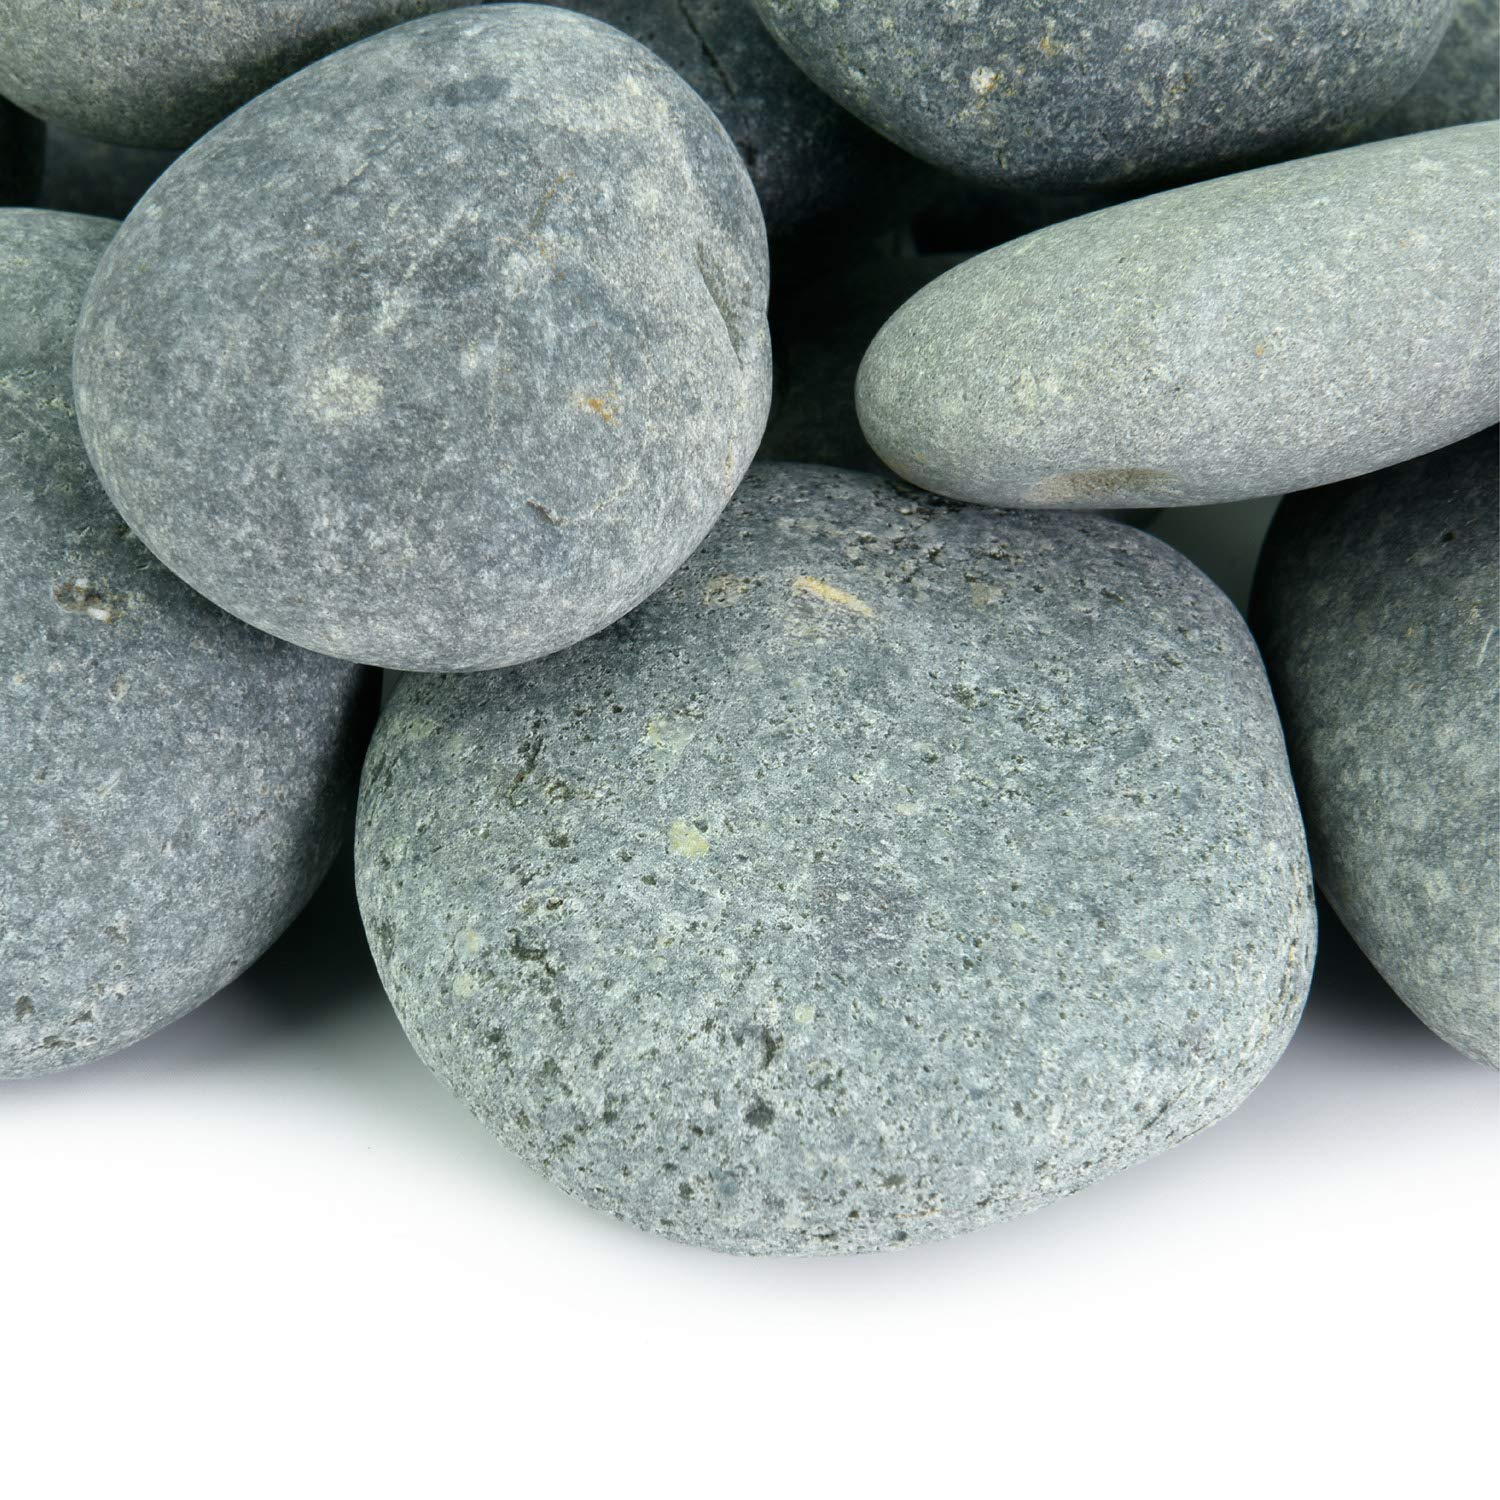 Mexican Beach Pebbles | 2000 Pounds of Smooth Unpolished Stones | Hand-Picked, Premium Pebbles for Garden and Landscape Design | Black, 3 Inch - 5 Inch